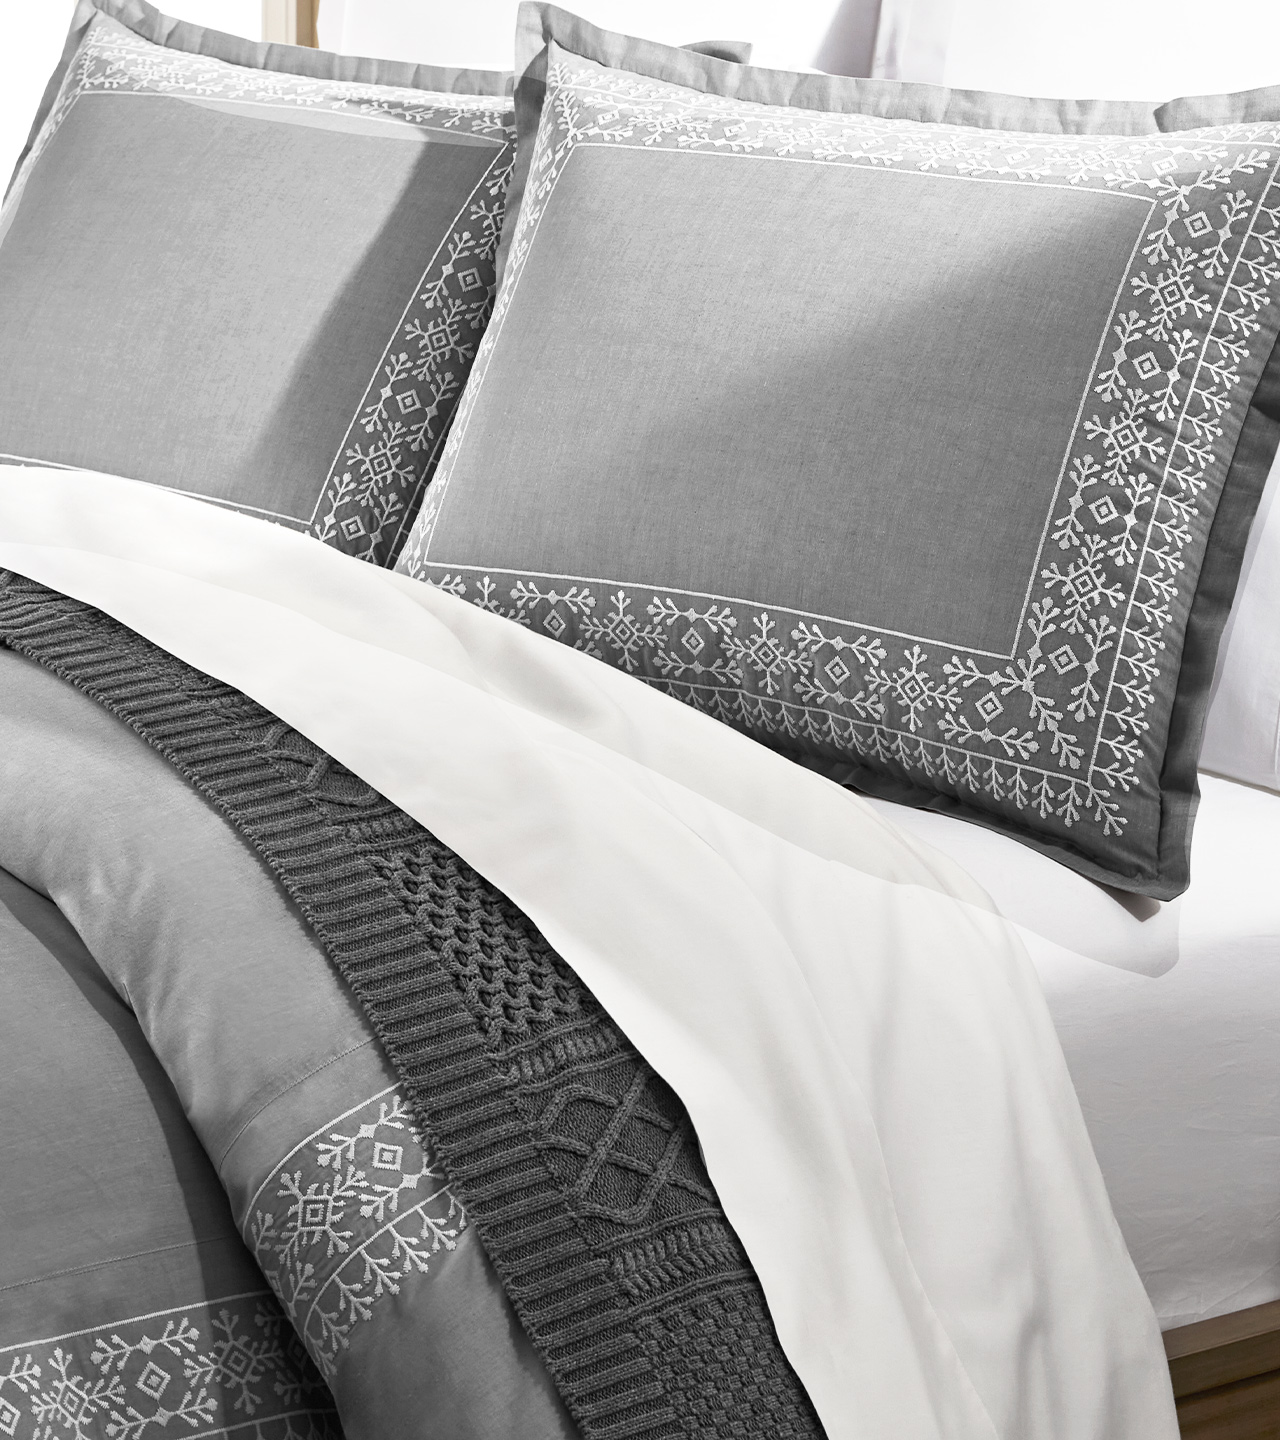 Chambray Embroidered Cottonfield Duvet Set   Boll & Branch ®